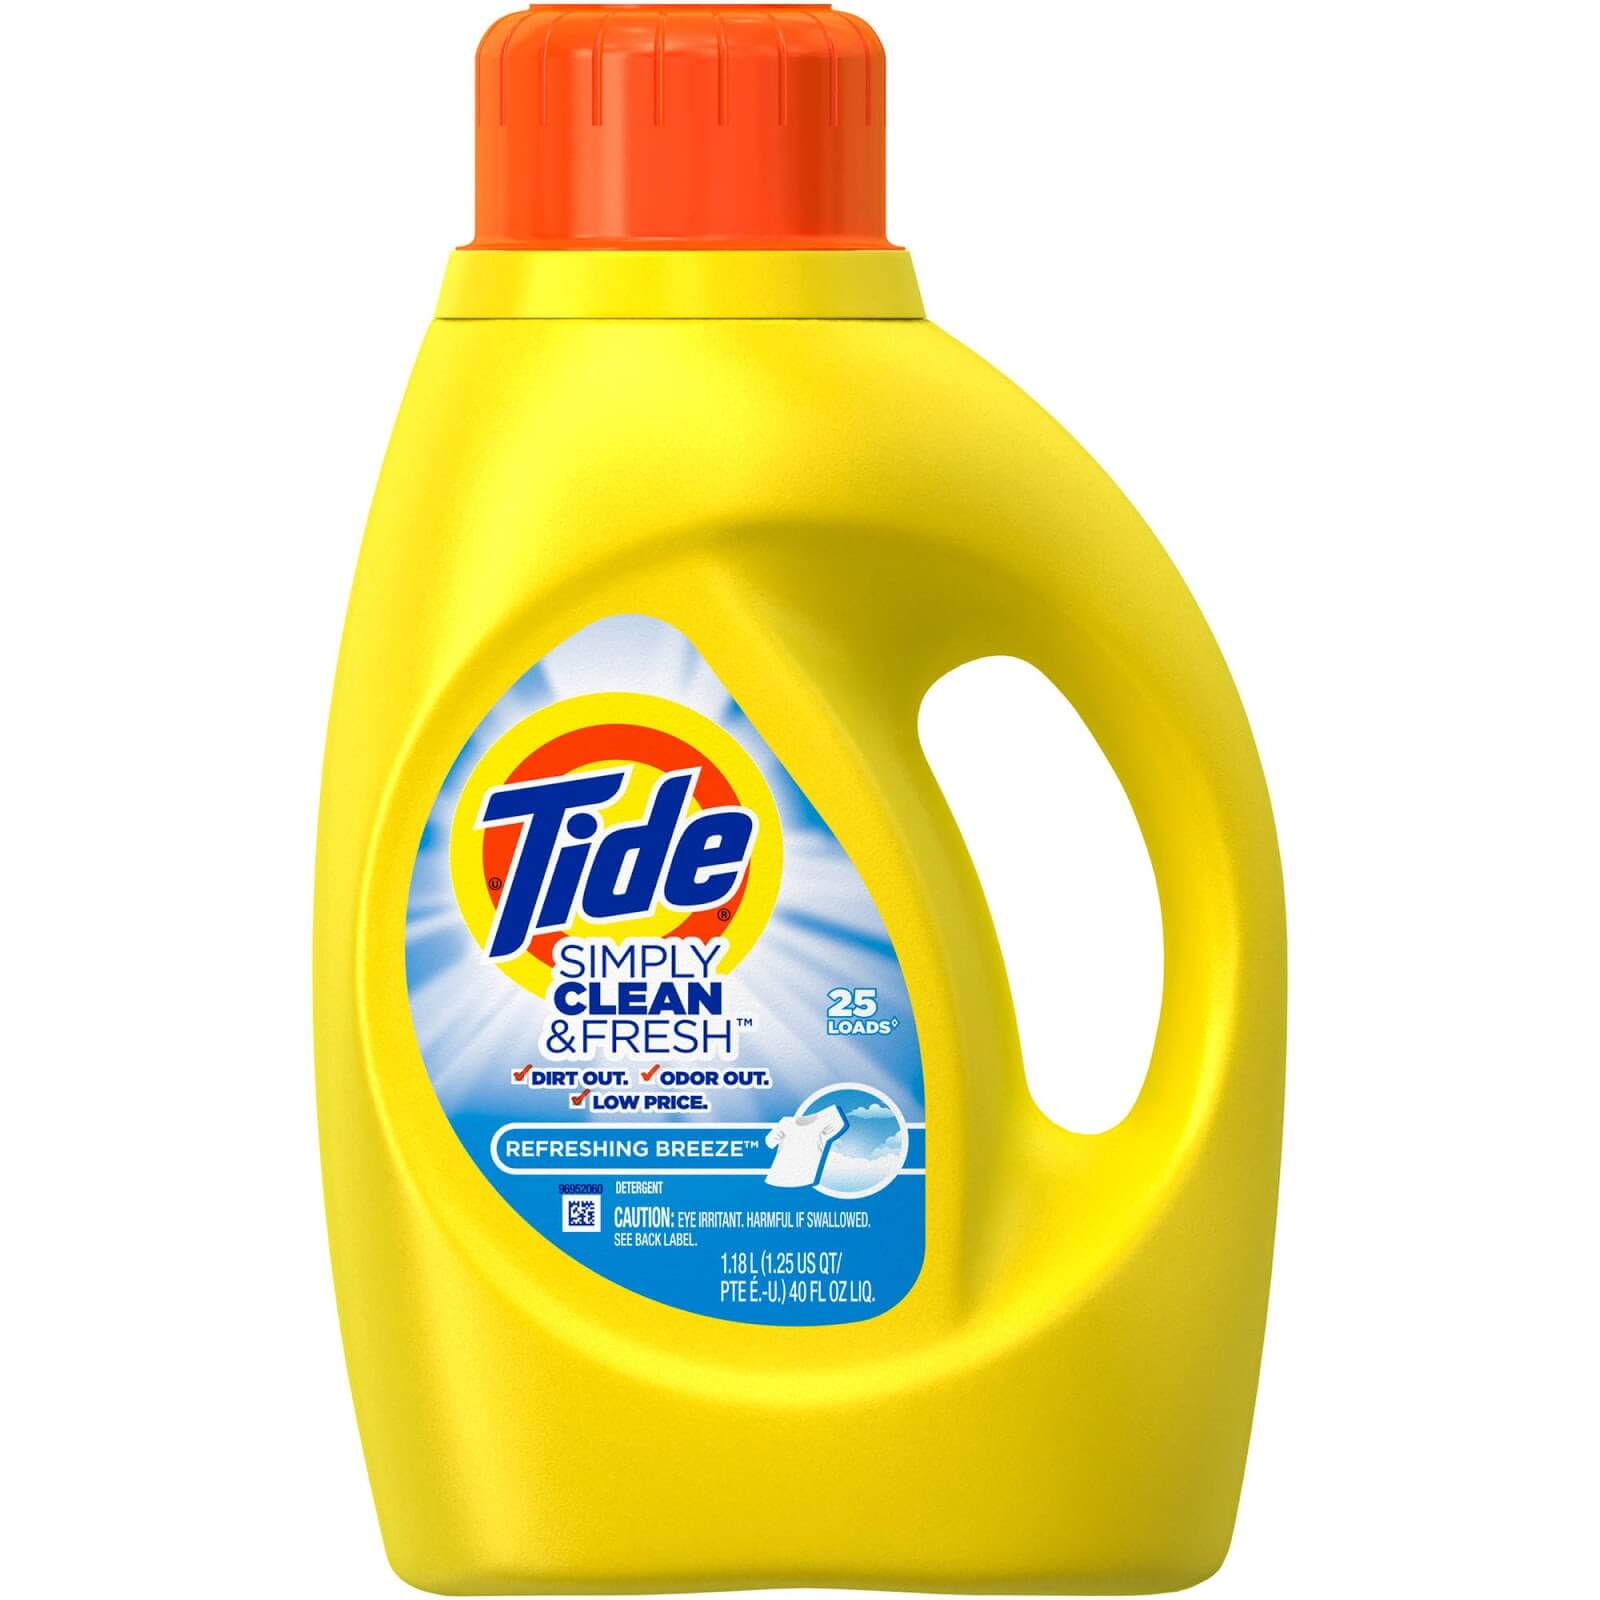 Laundry tide coupons